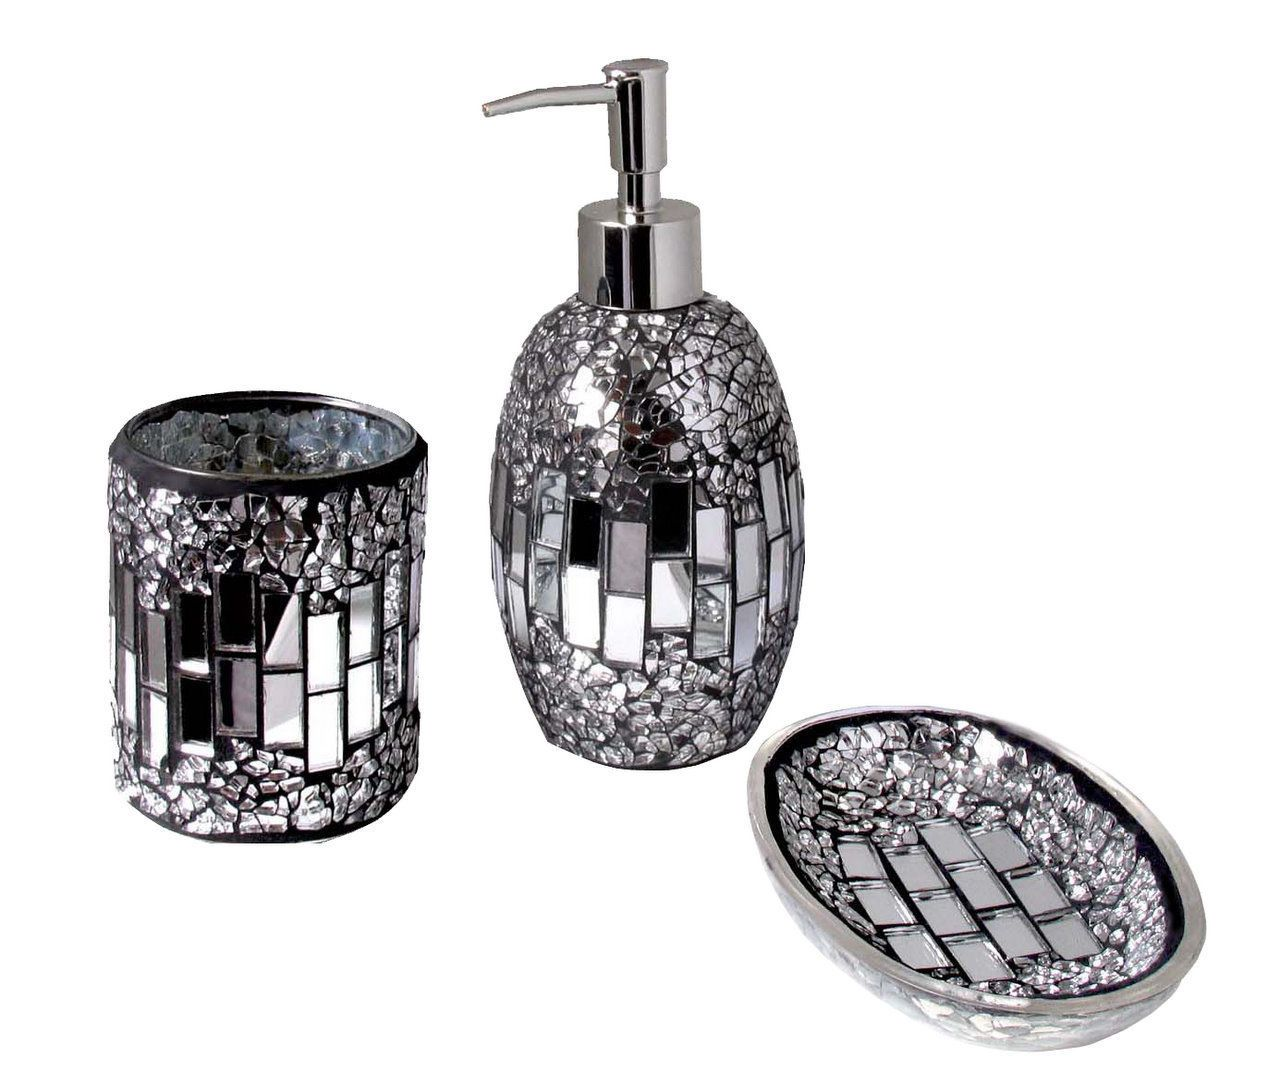 Glitter Bathroom Accessories Silver Black Sparkle Mosaic